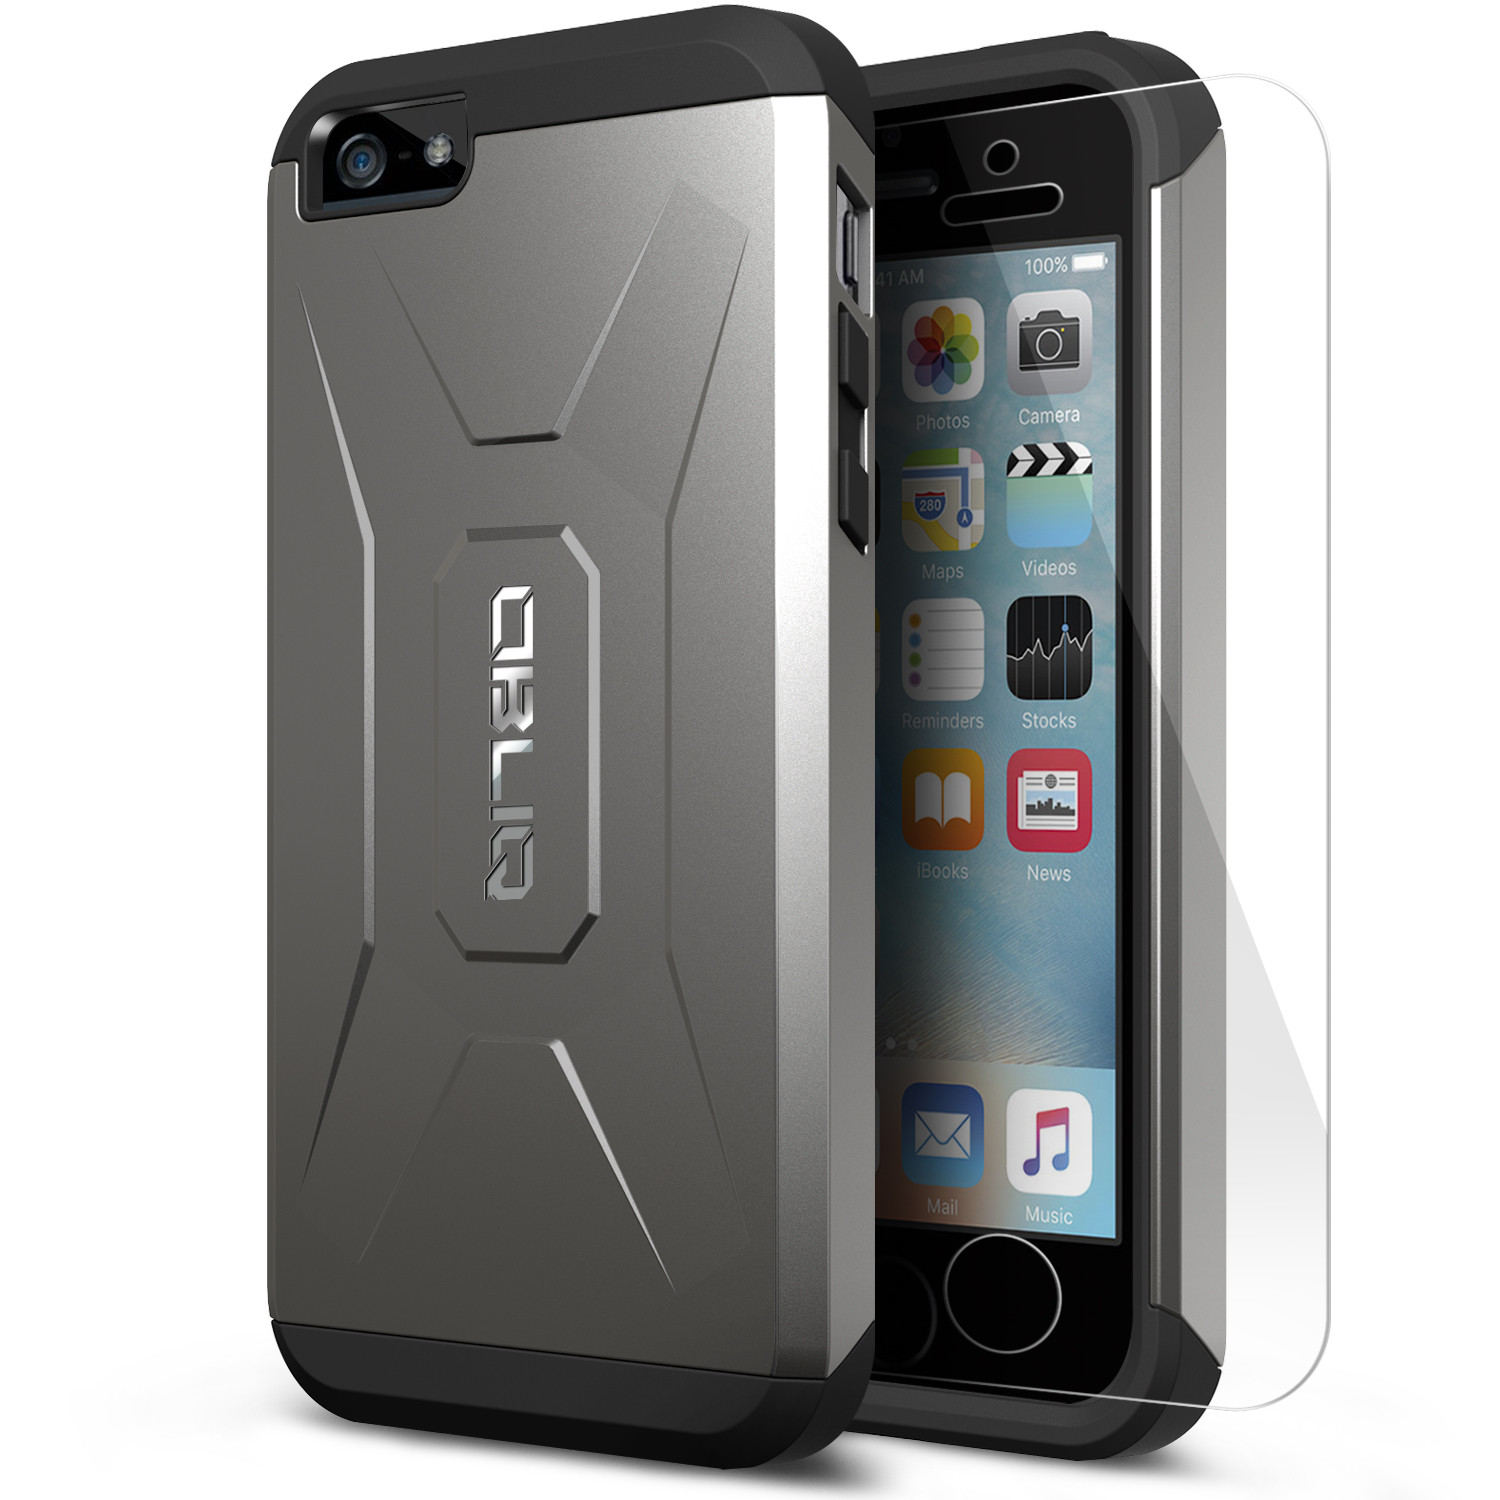 OBLIQ, iPhone 5C Case [Xtreme Pro][Gun Metal] Hybrid Rugged Dual Layered Armor Shock Resistant Protective Cover for Apple iPhone 5C